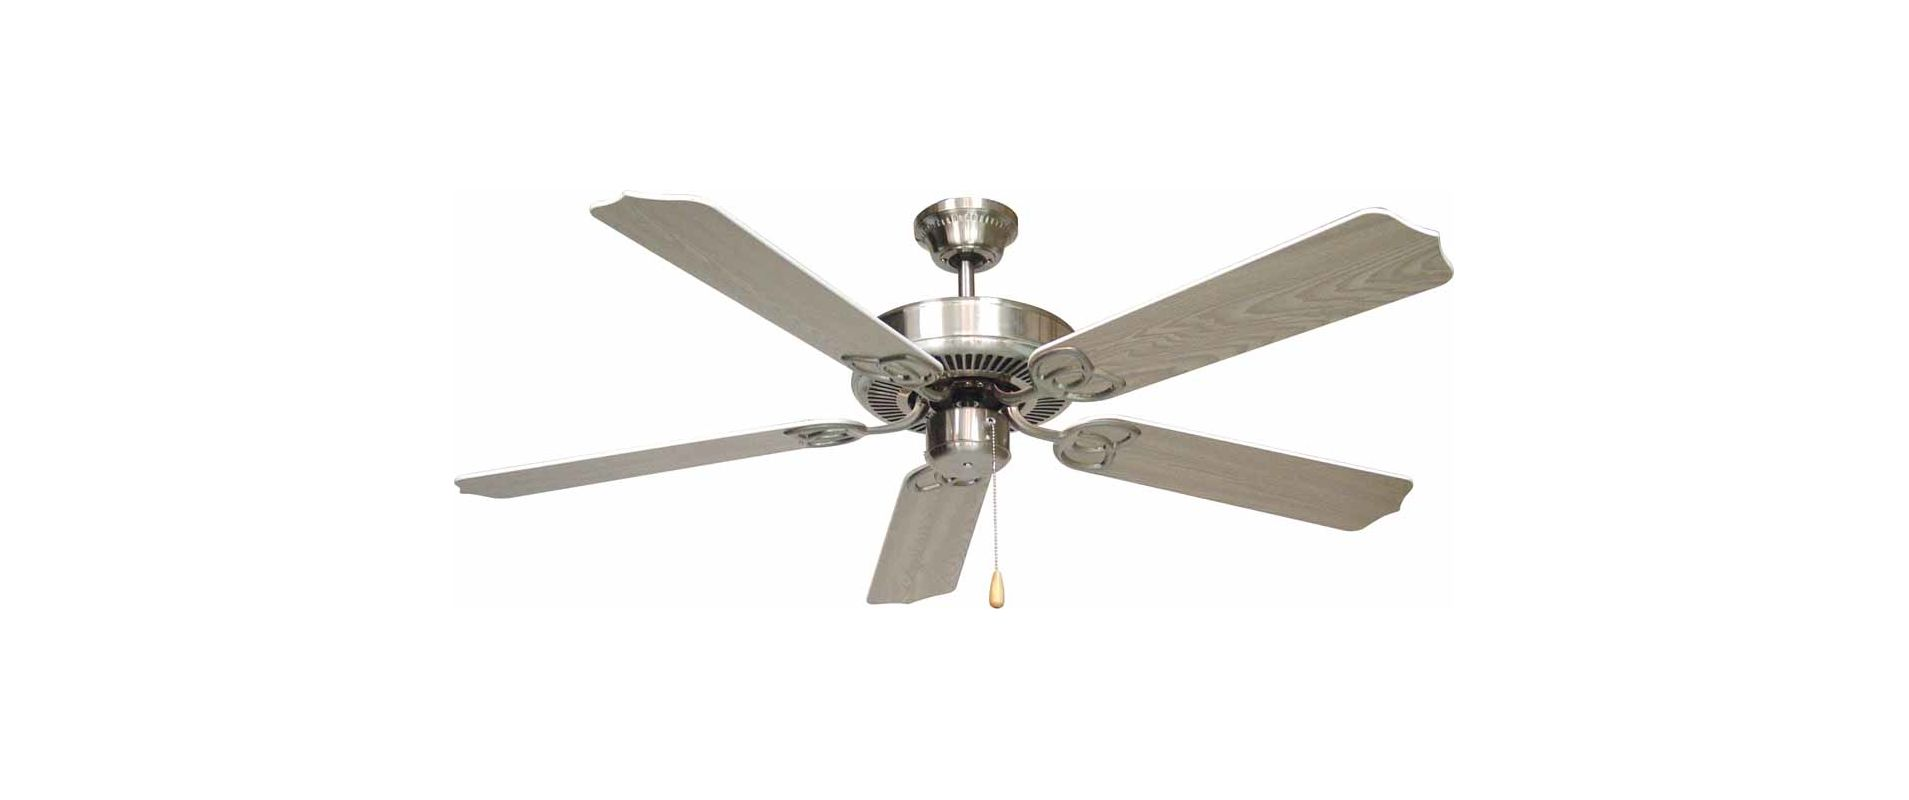 "Volume Lighting V5962 5 Blade 52"" Indoor Ceiling Fan with White /"